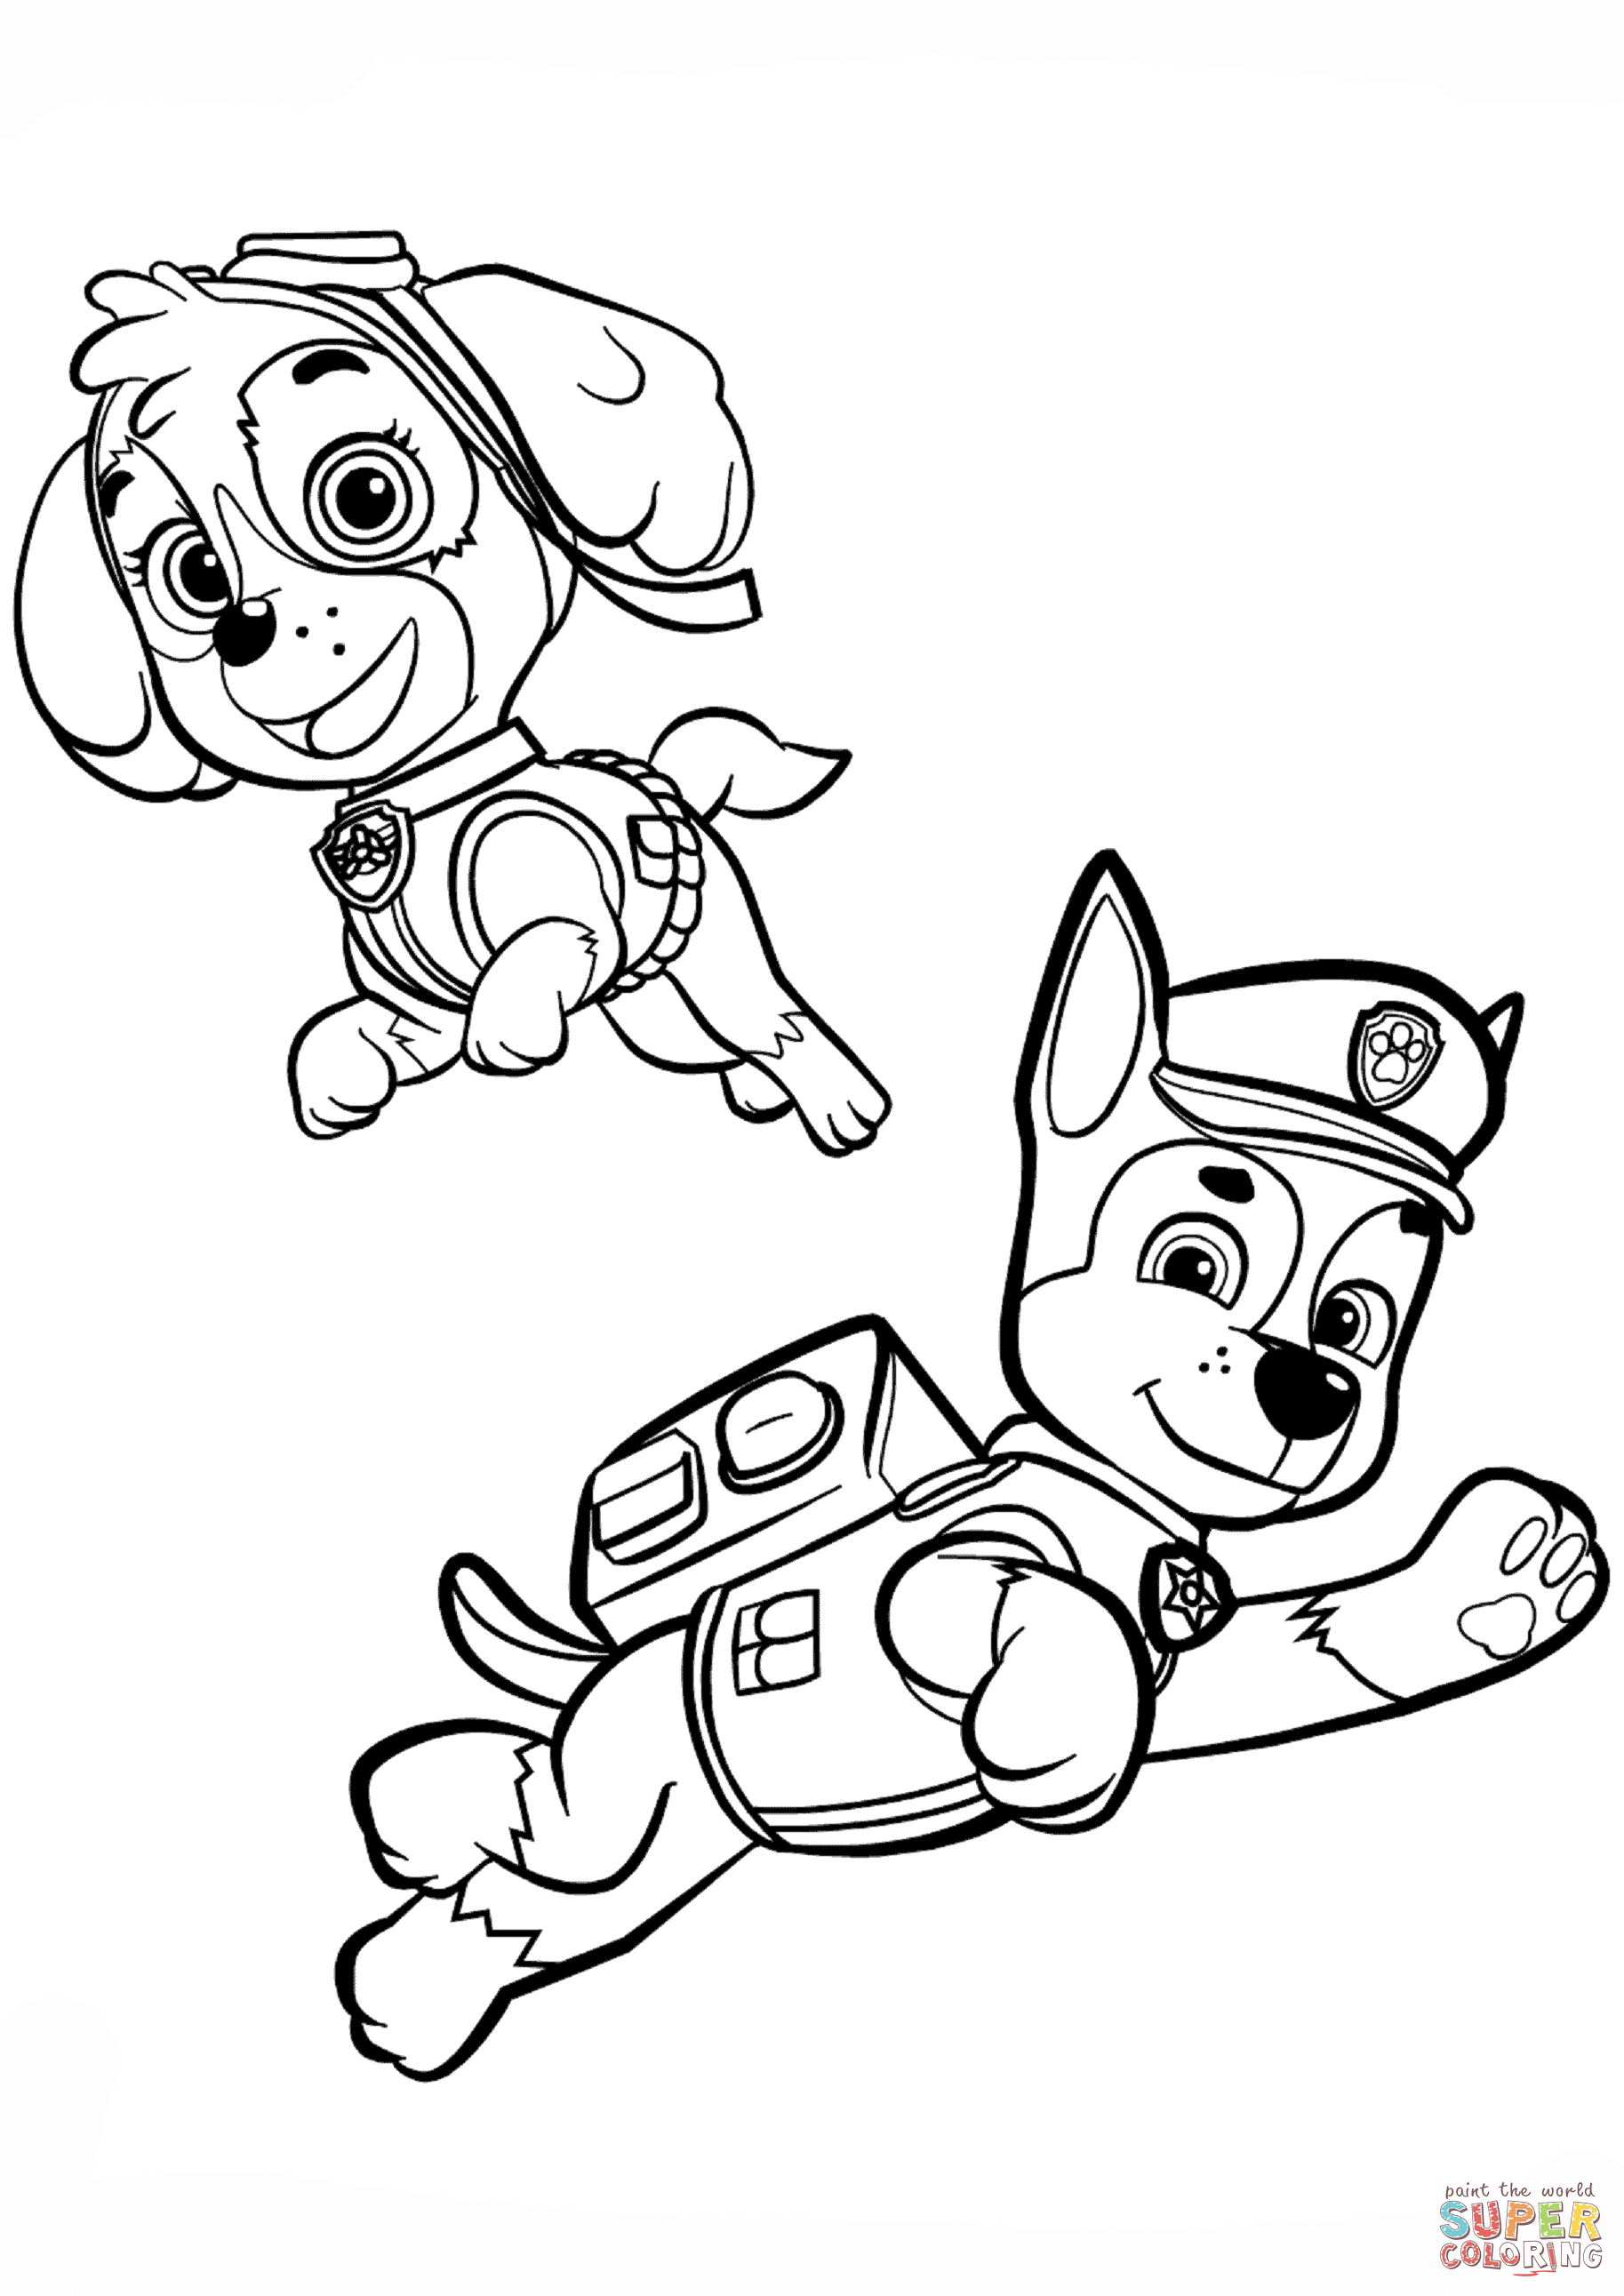 Chase and Skye coloring page Free Printable Coloring